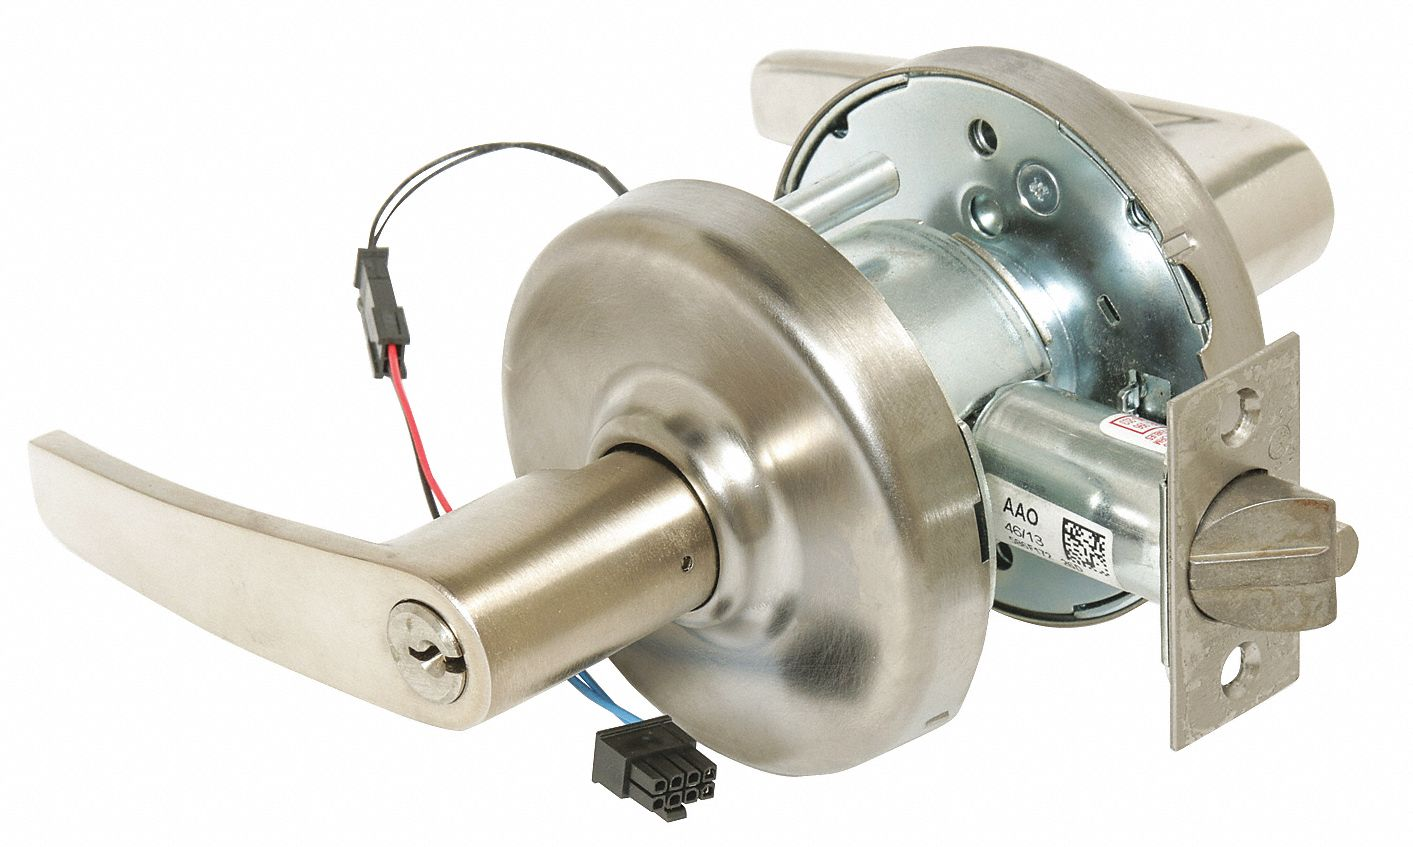 CORBIN CL33905 AZD 626 24AD Lever Lockset,  Electrical,  Extra Heavy Duty,  Keyed Different,  Satin Chrome,  2 3/4 in Backset